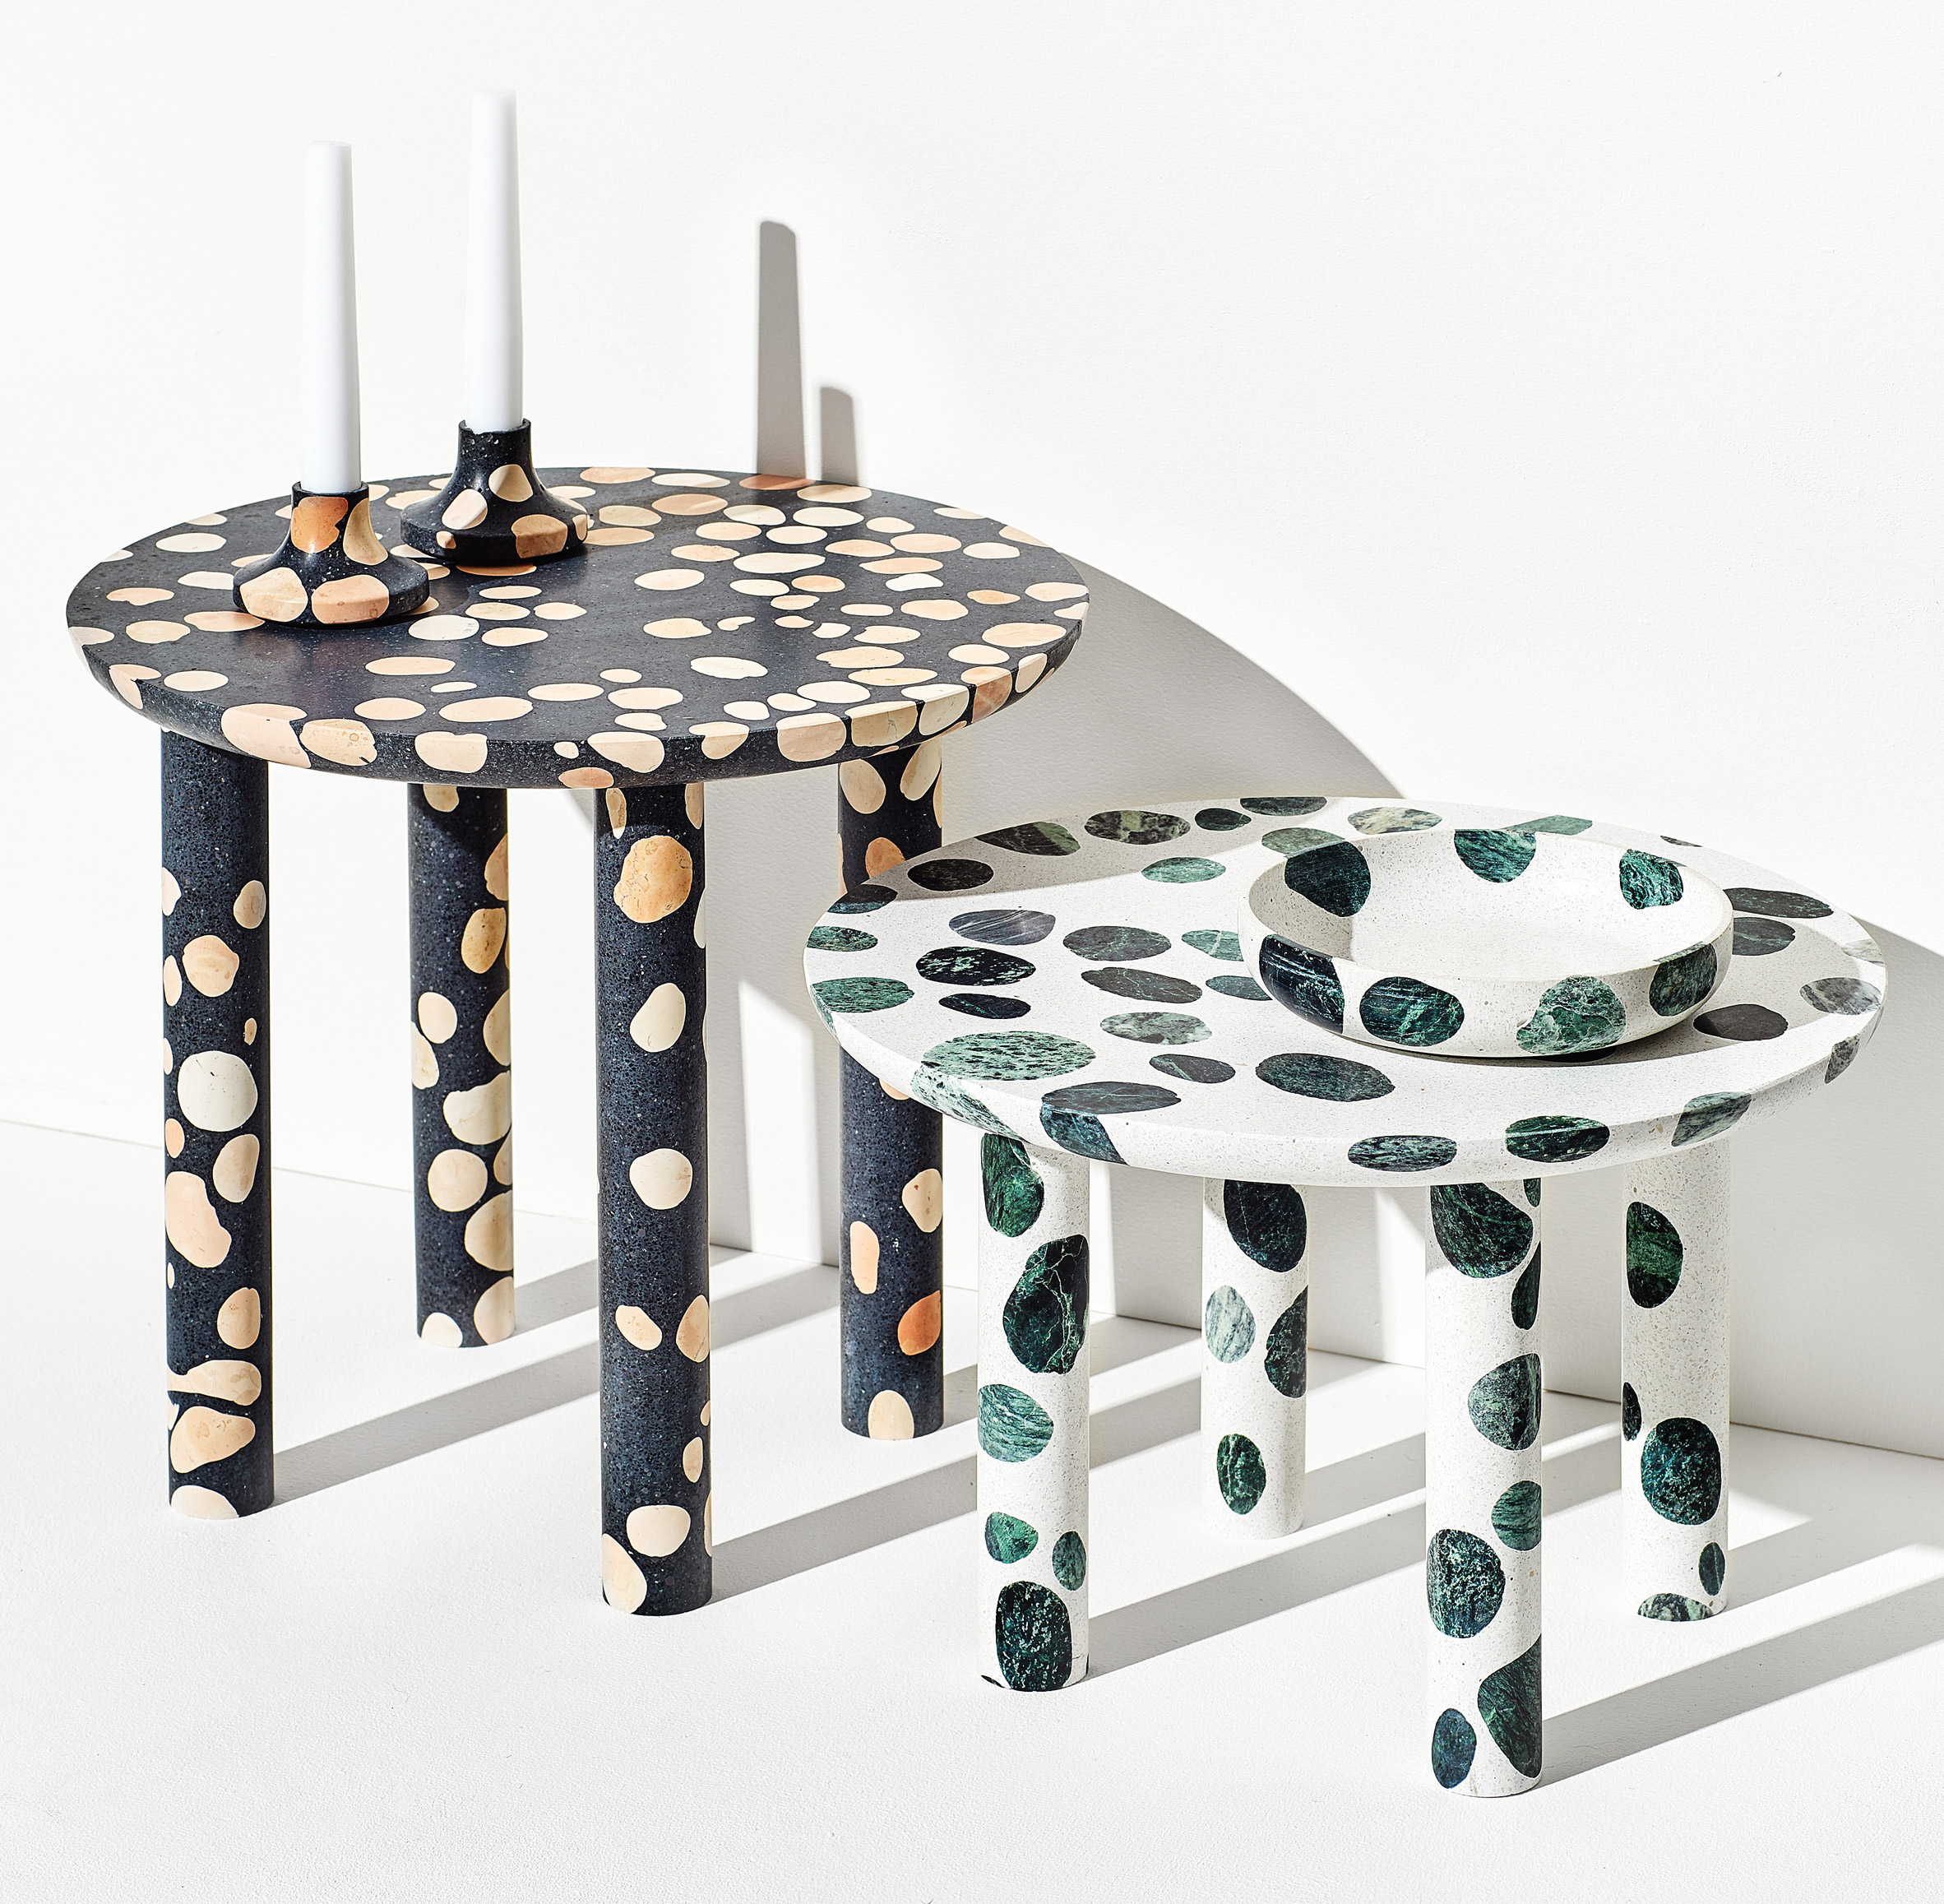 Alberto Bellamoli creates dappled terrazzo tables, bowls and candleholders